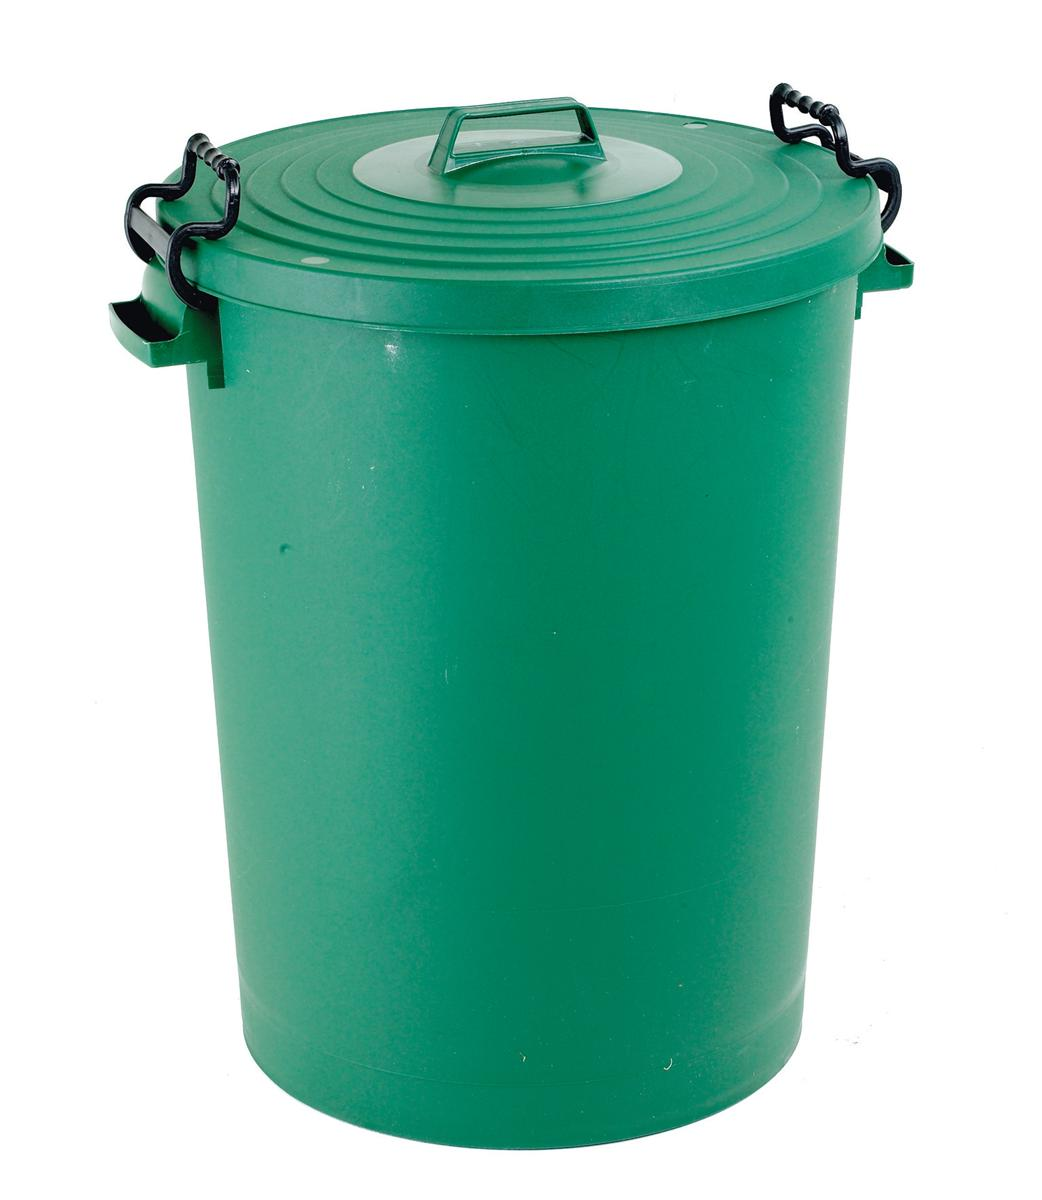 Image for Dustbin with Green Lid 110 Litres